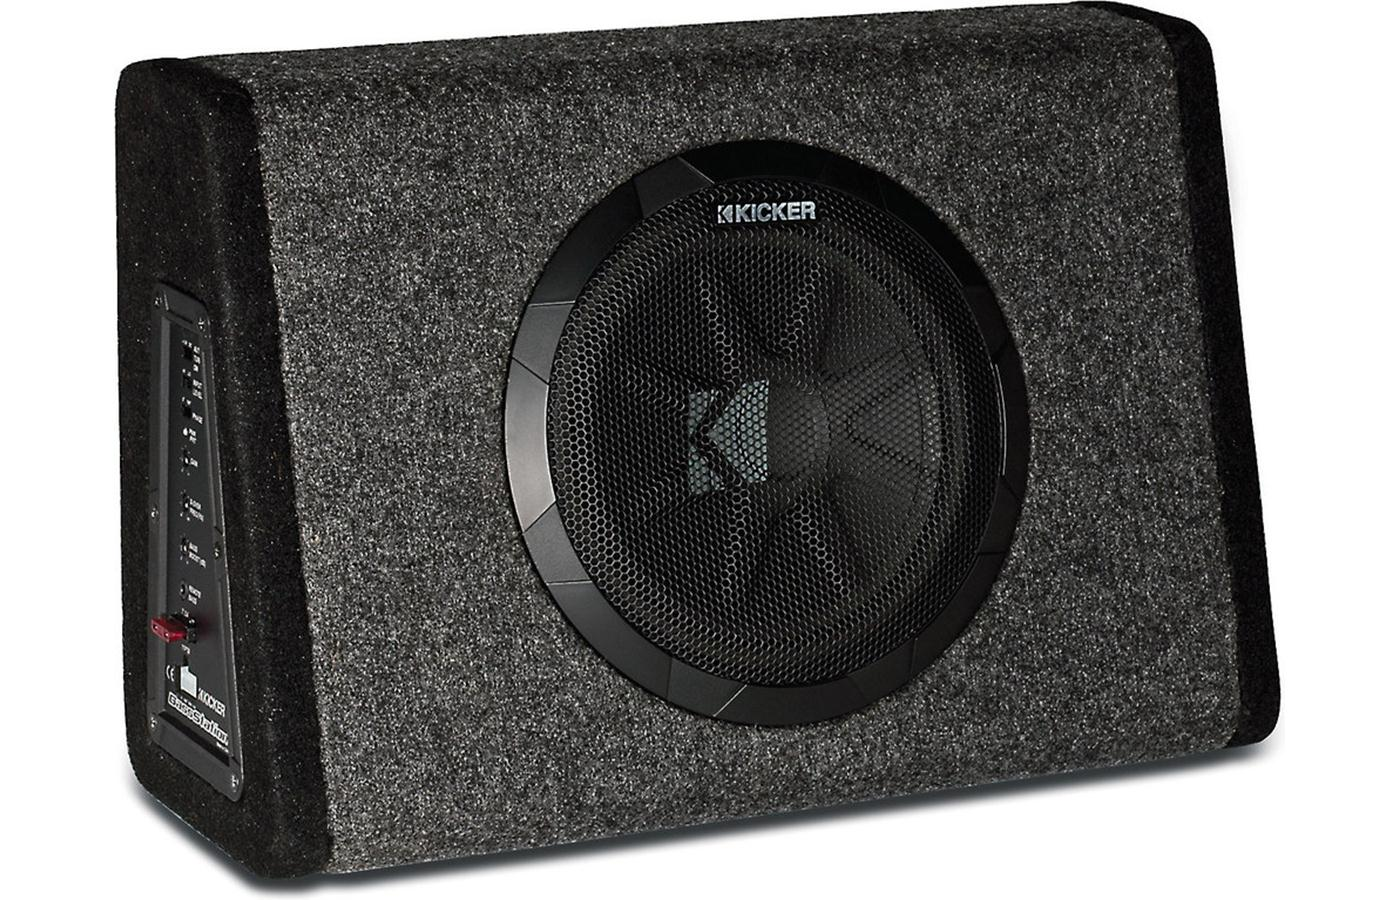 "Kicker 11PT10CA Powered 10"" Subwoofer Enclosure w/ Remote Bass-Level Controller - Limited Stock"